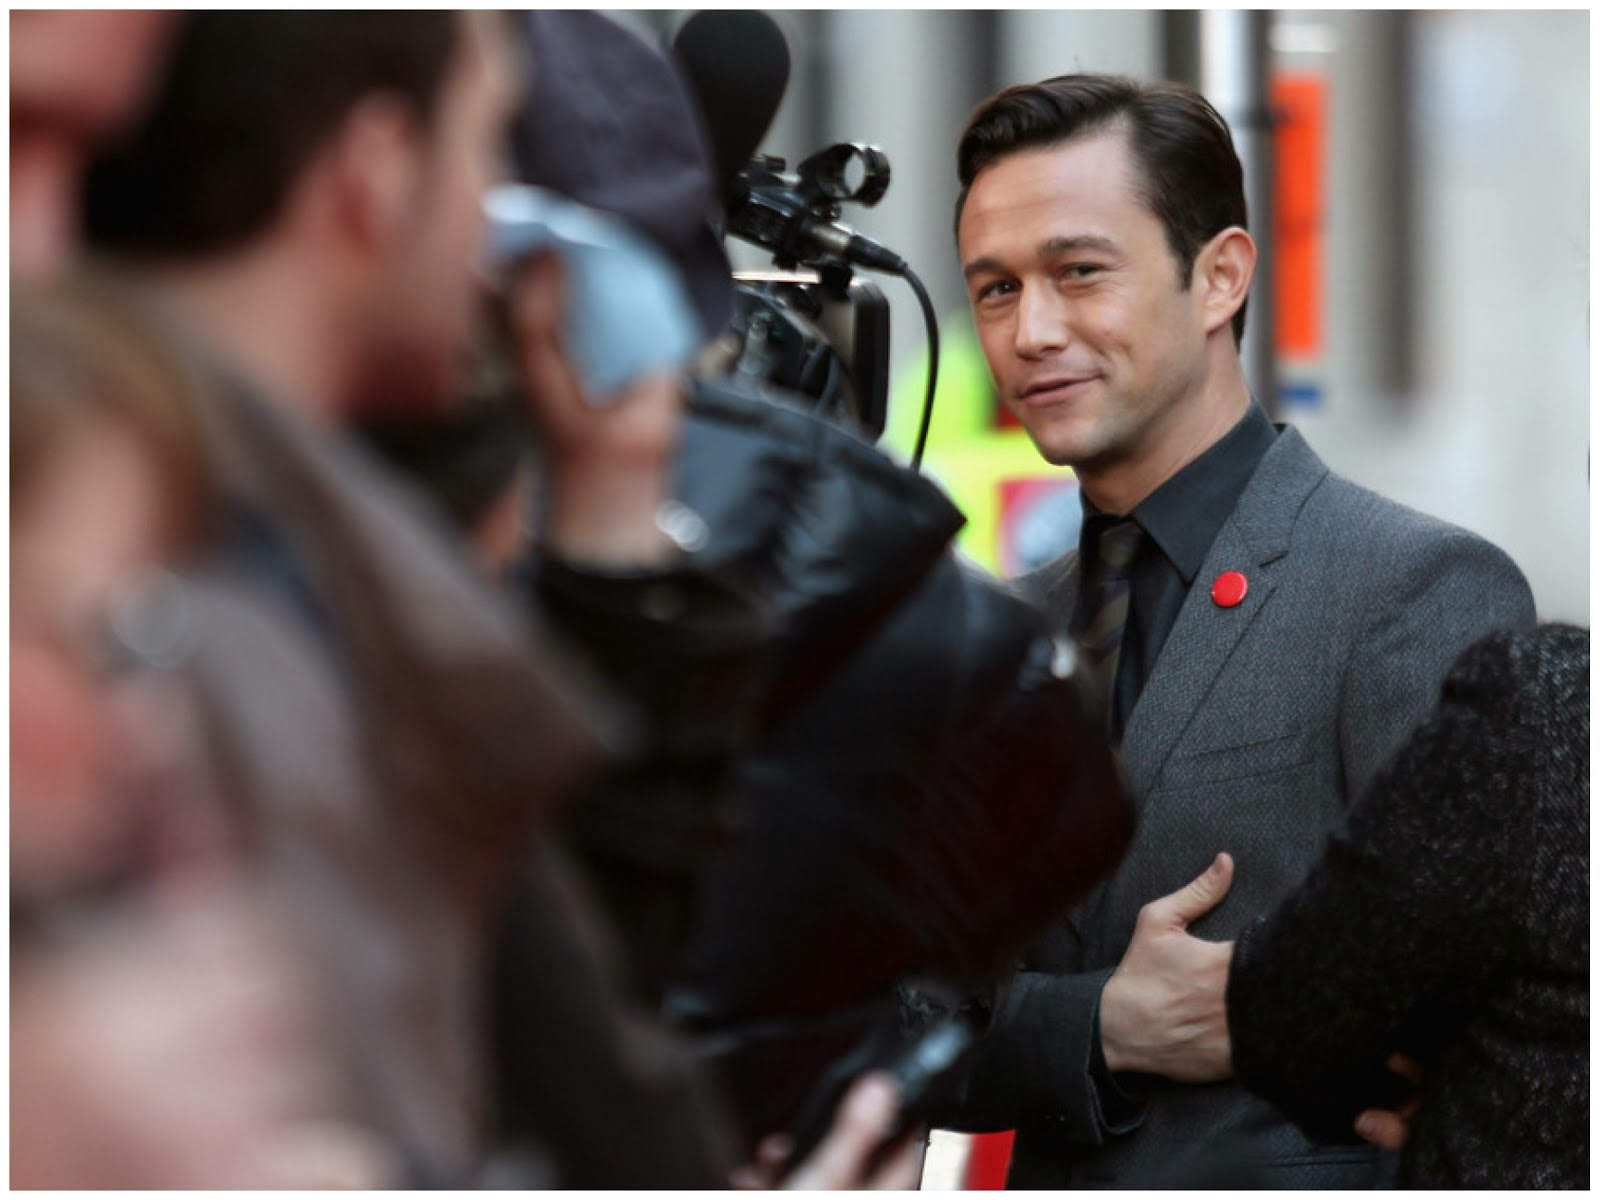 00O00 Menswear Blog: Joseph Gordon Levitt in Burberry Tailoring - 'Don Jon' screening, 57th BFI London Film Festival October 2013